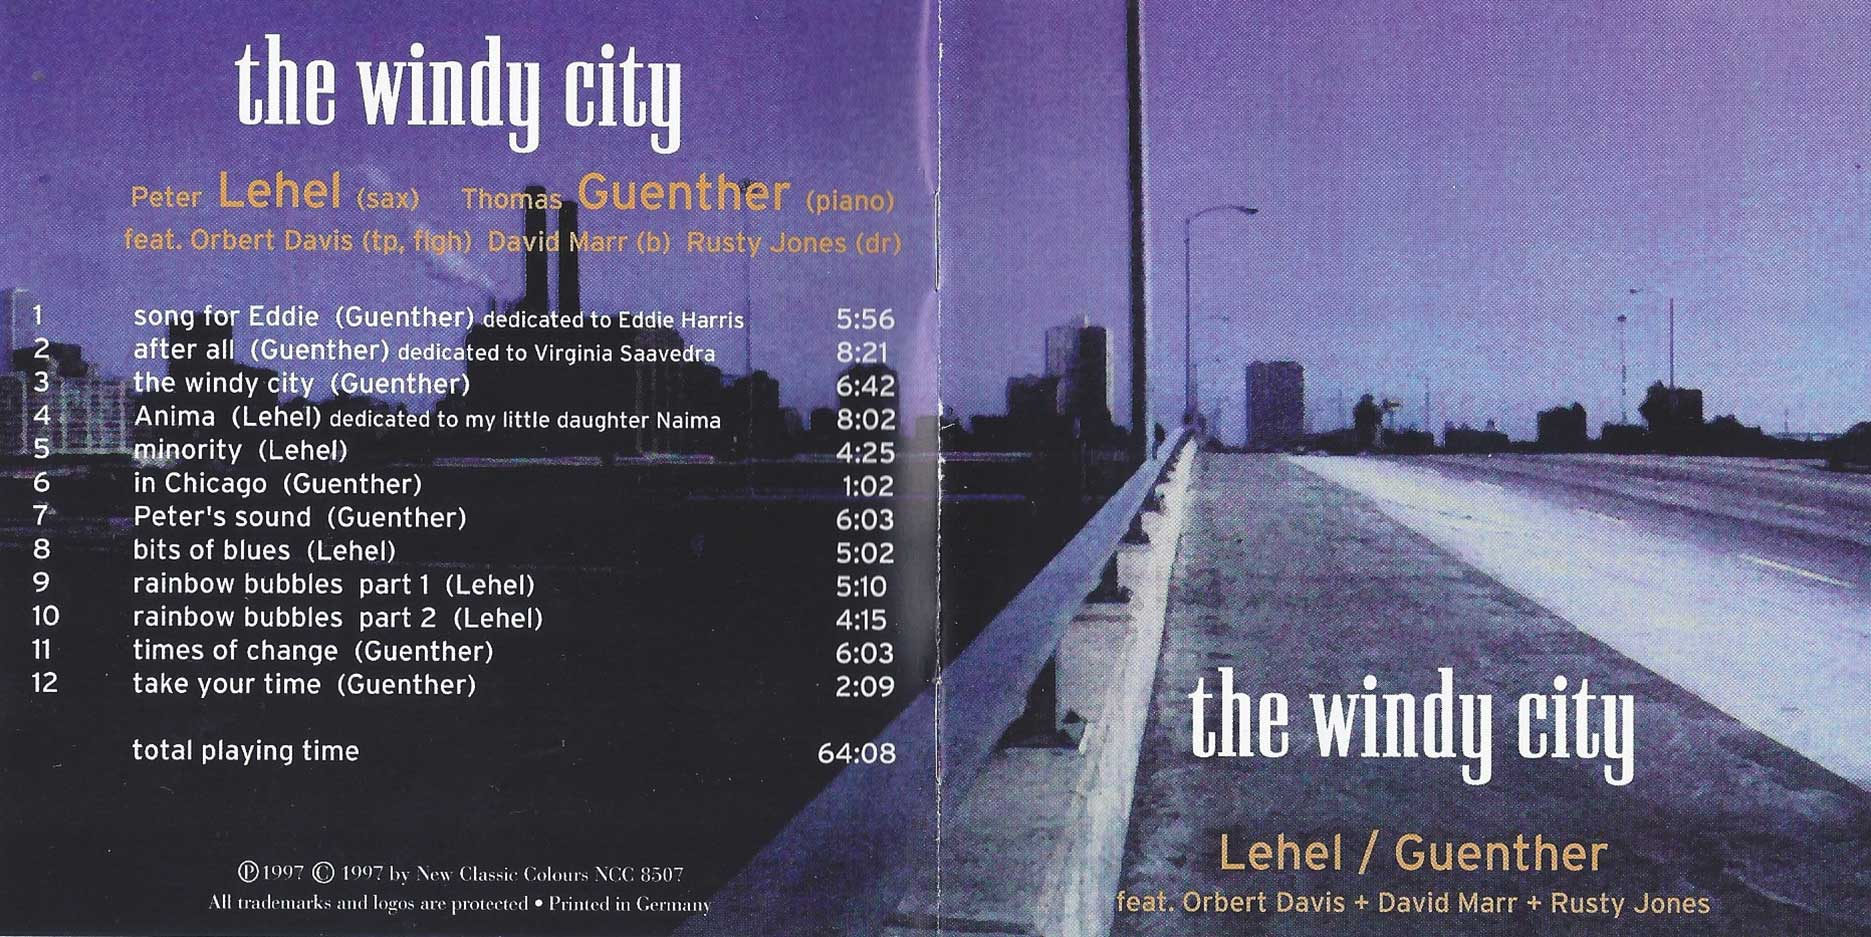 Windy-City-CD-Original-Cover-Art